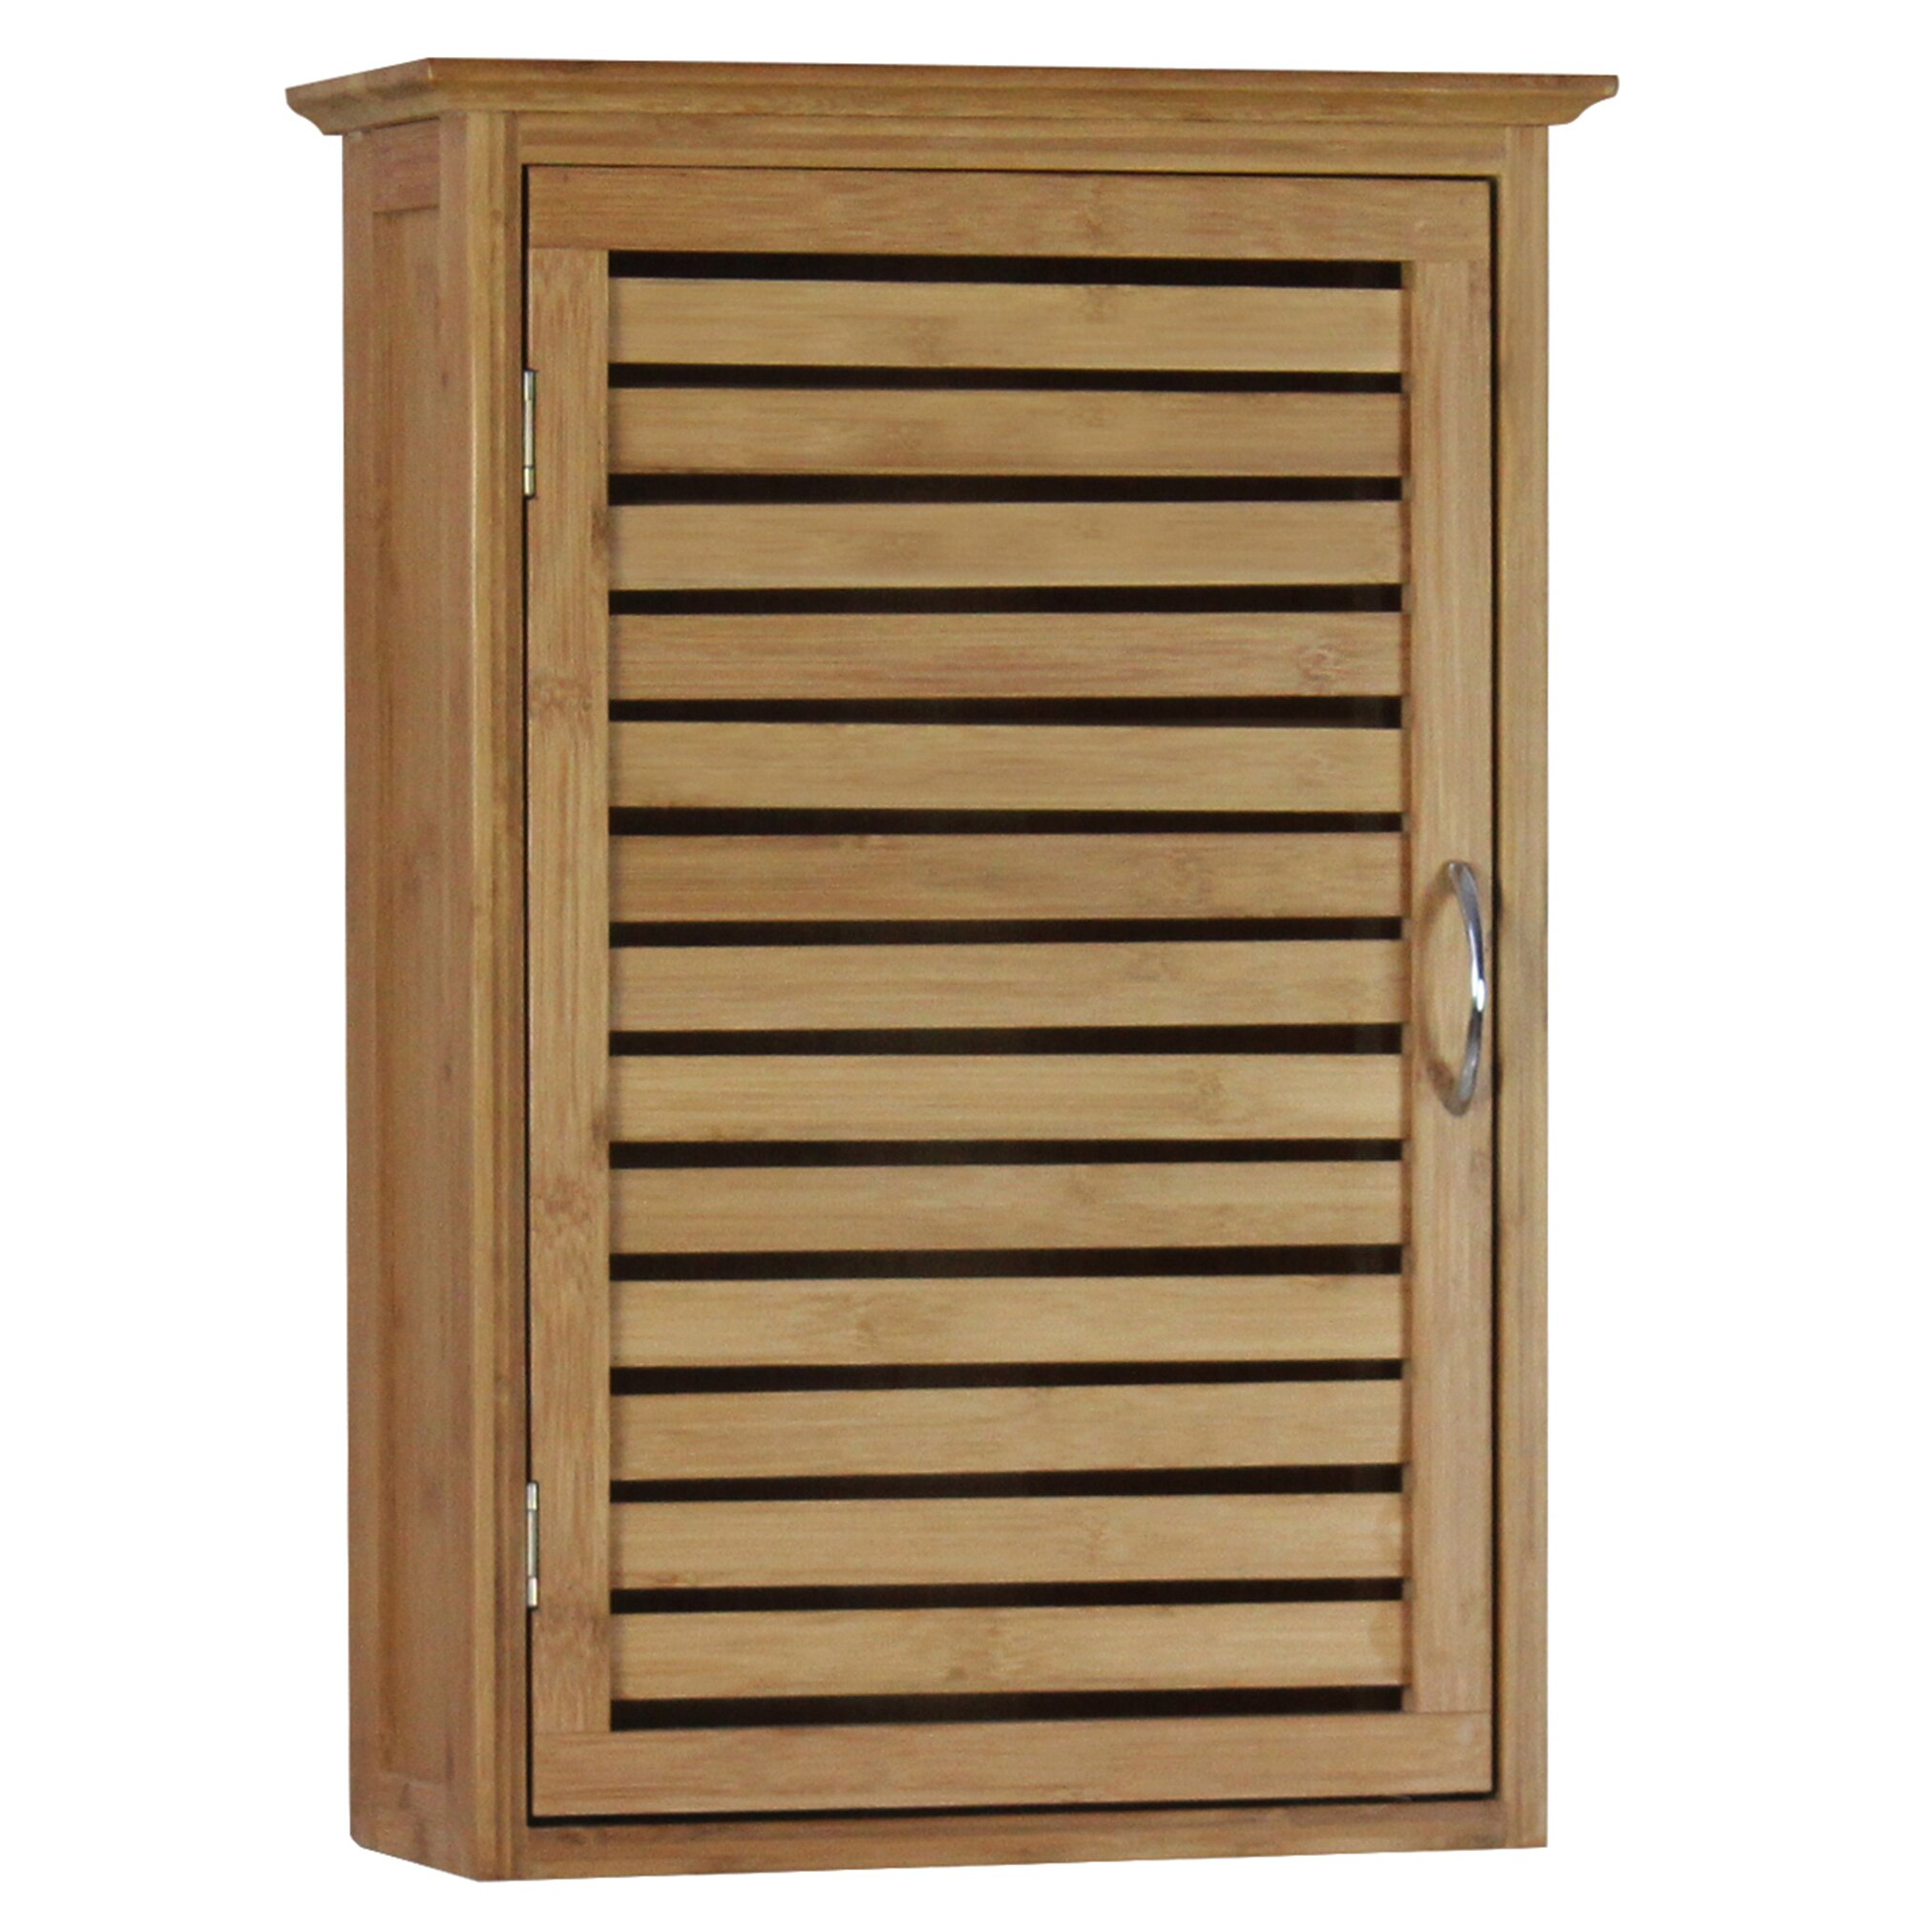 gallerie decor spa 14 5 x 21 wall mounted cabinet. Black Bedroom Furniture Sets. Home Design Ideas